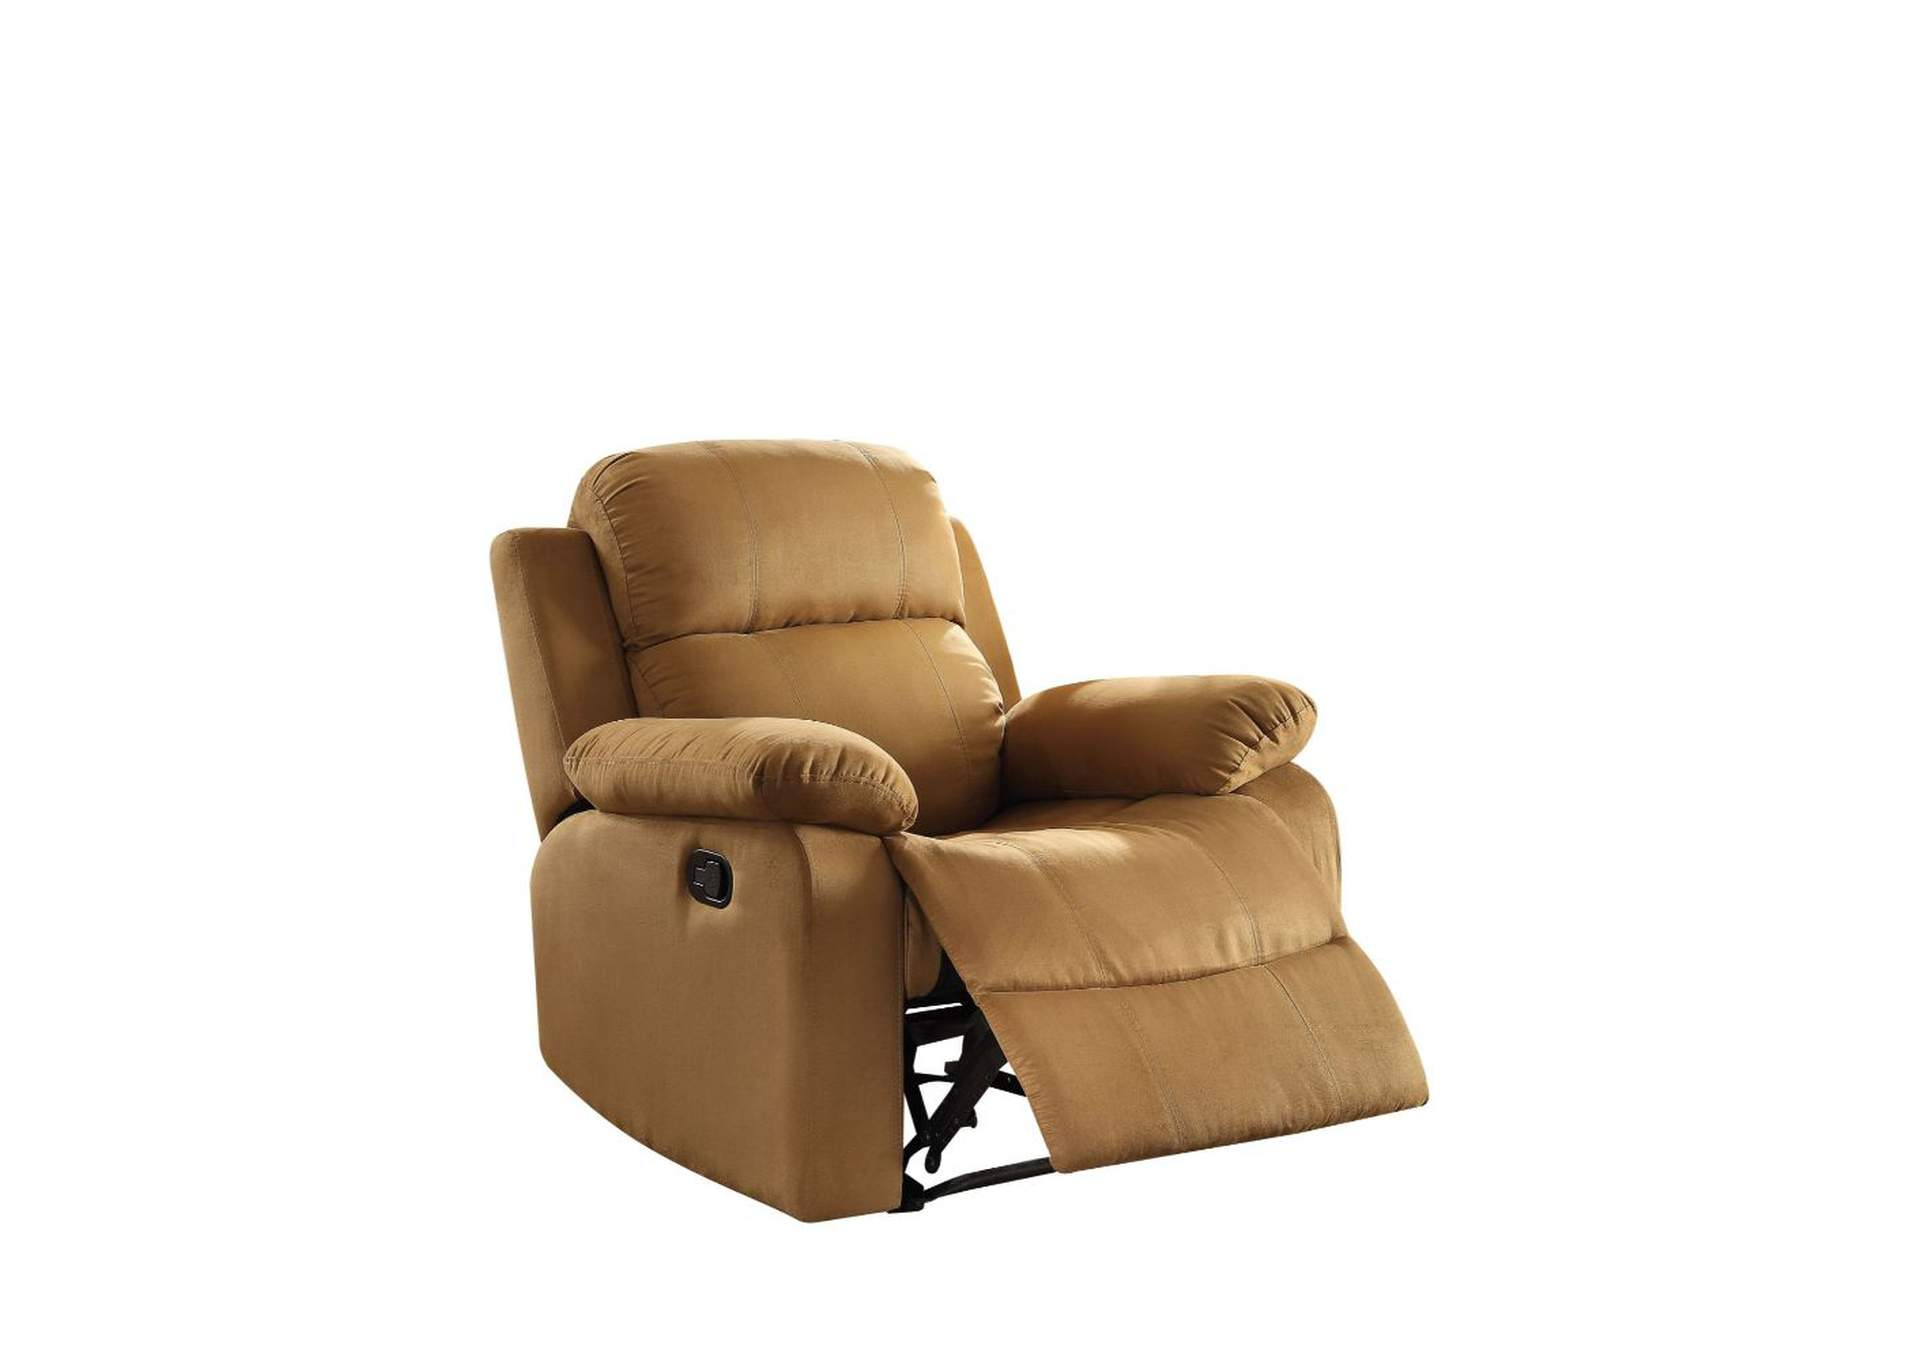 Parklon Brown Microfiber Recliner,Acme